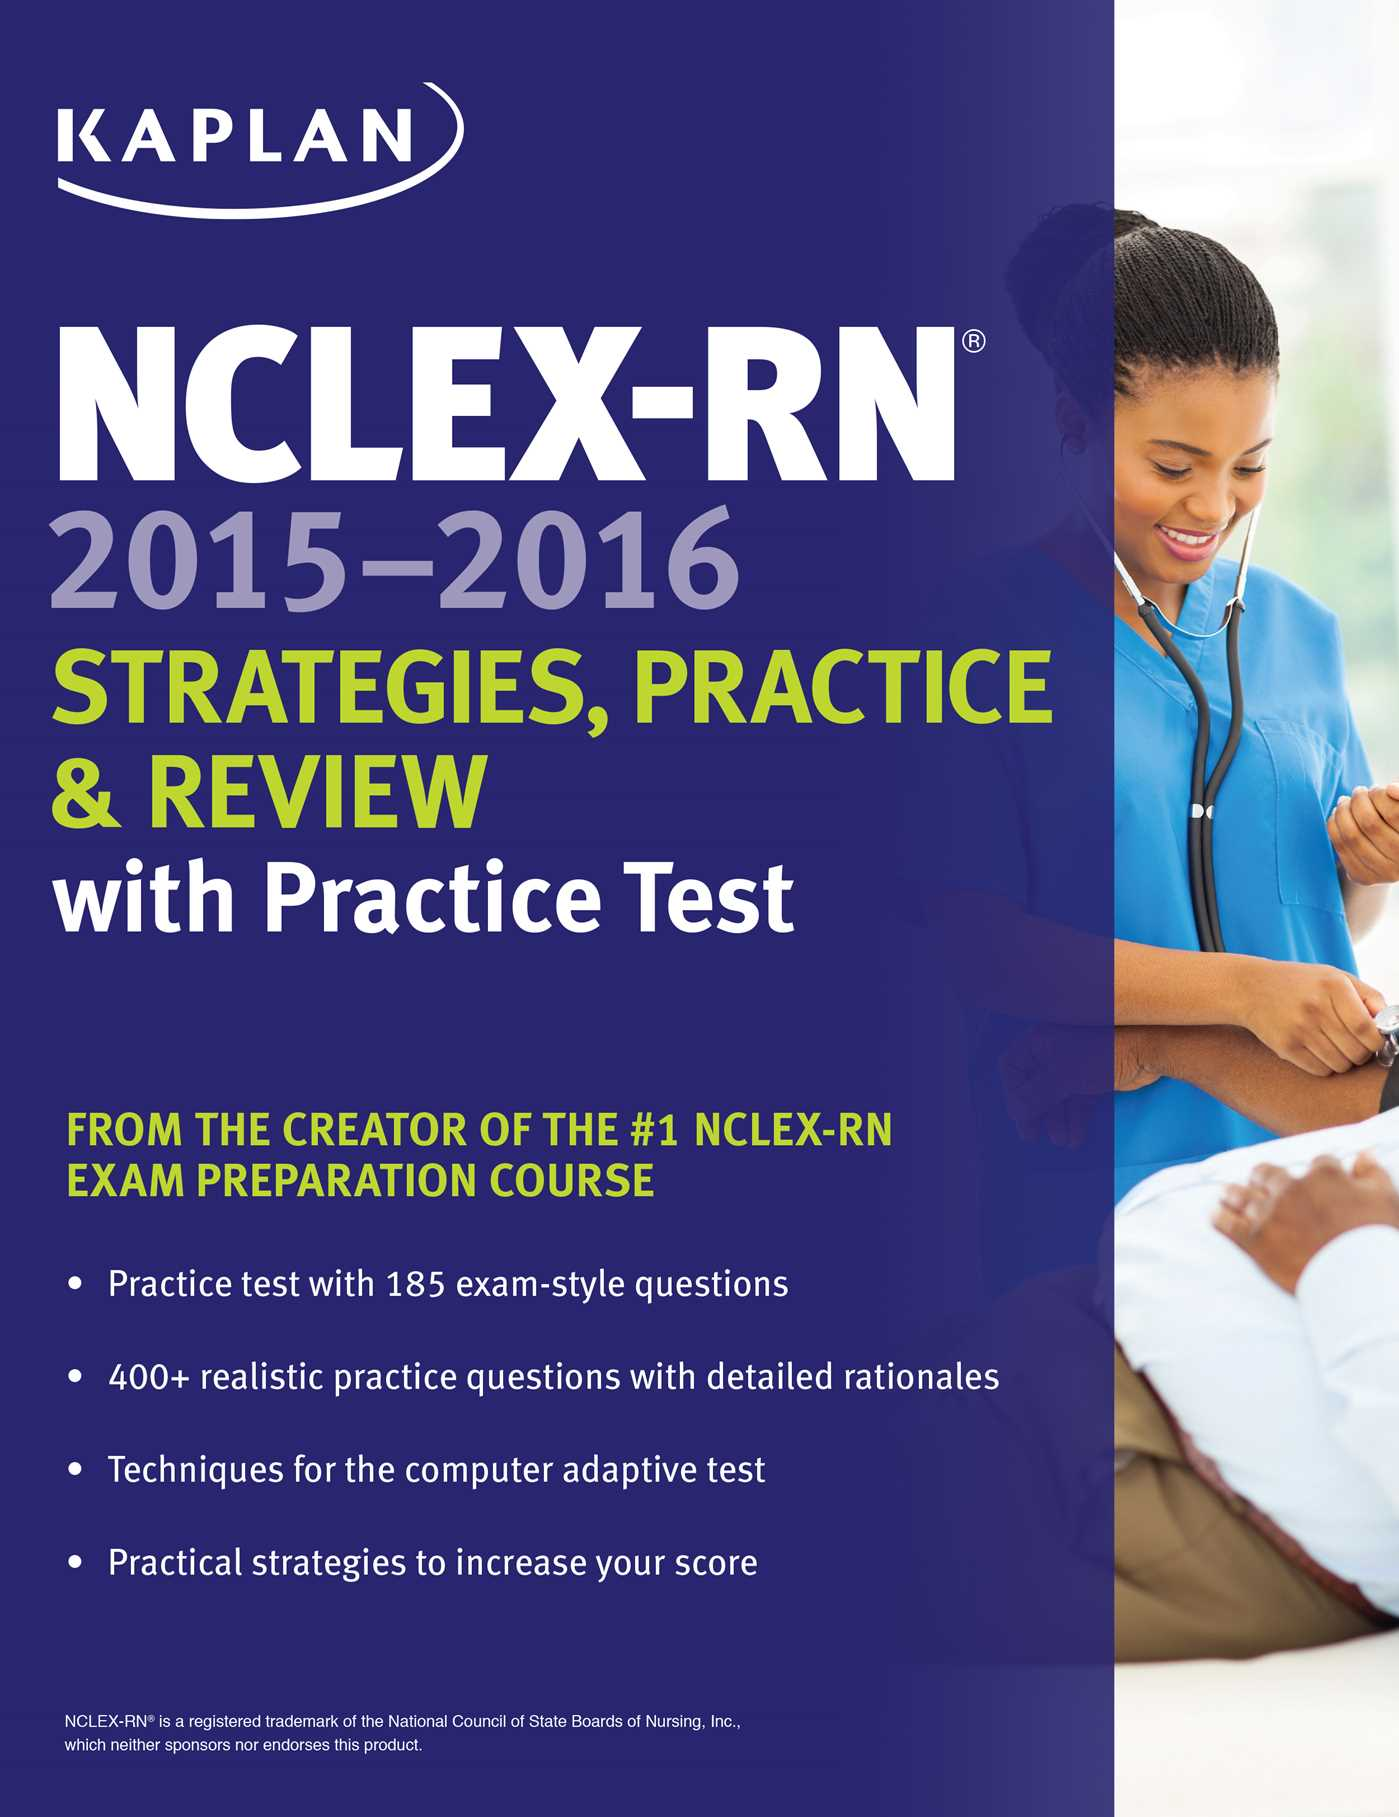 Best NCLEX Prep Books 2018/2019 - Exam Genius